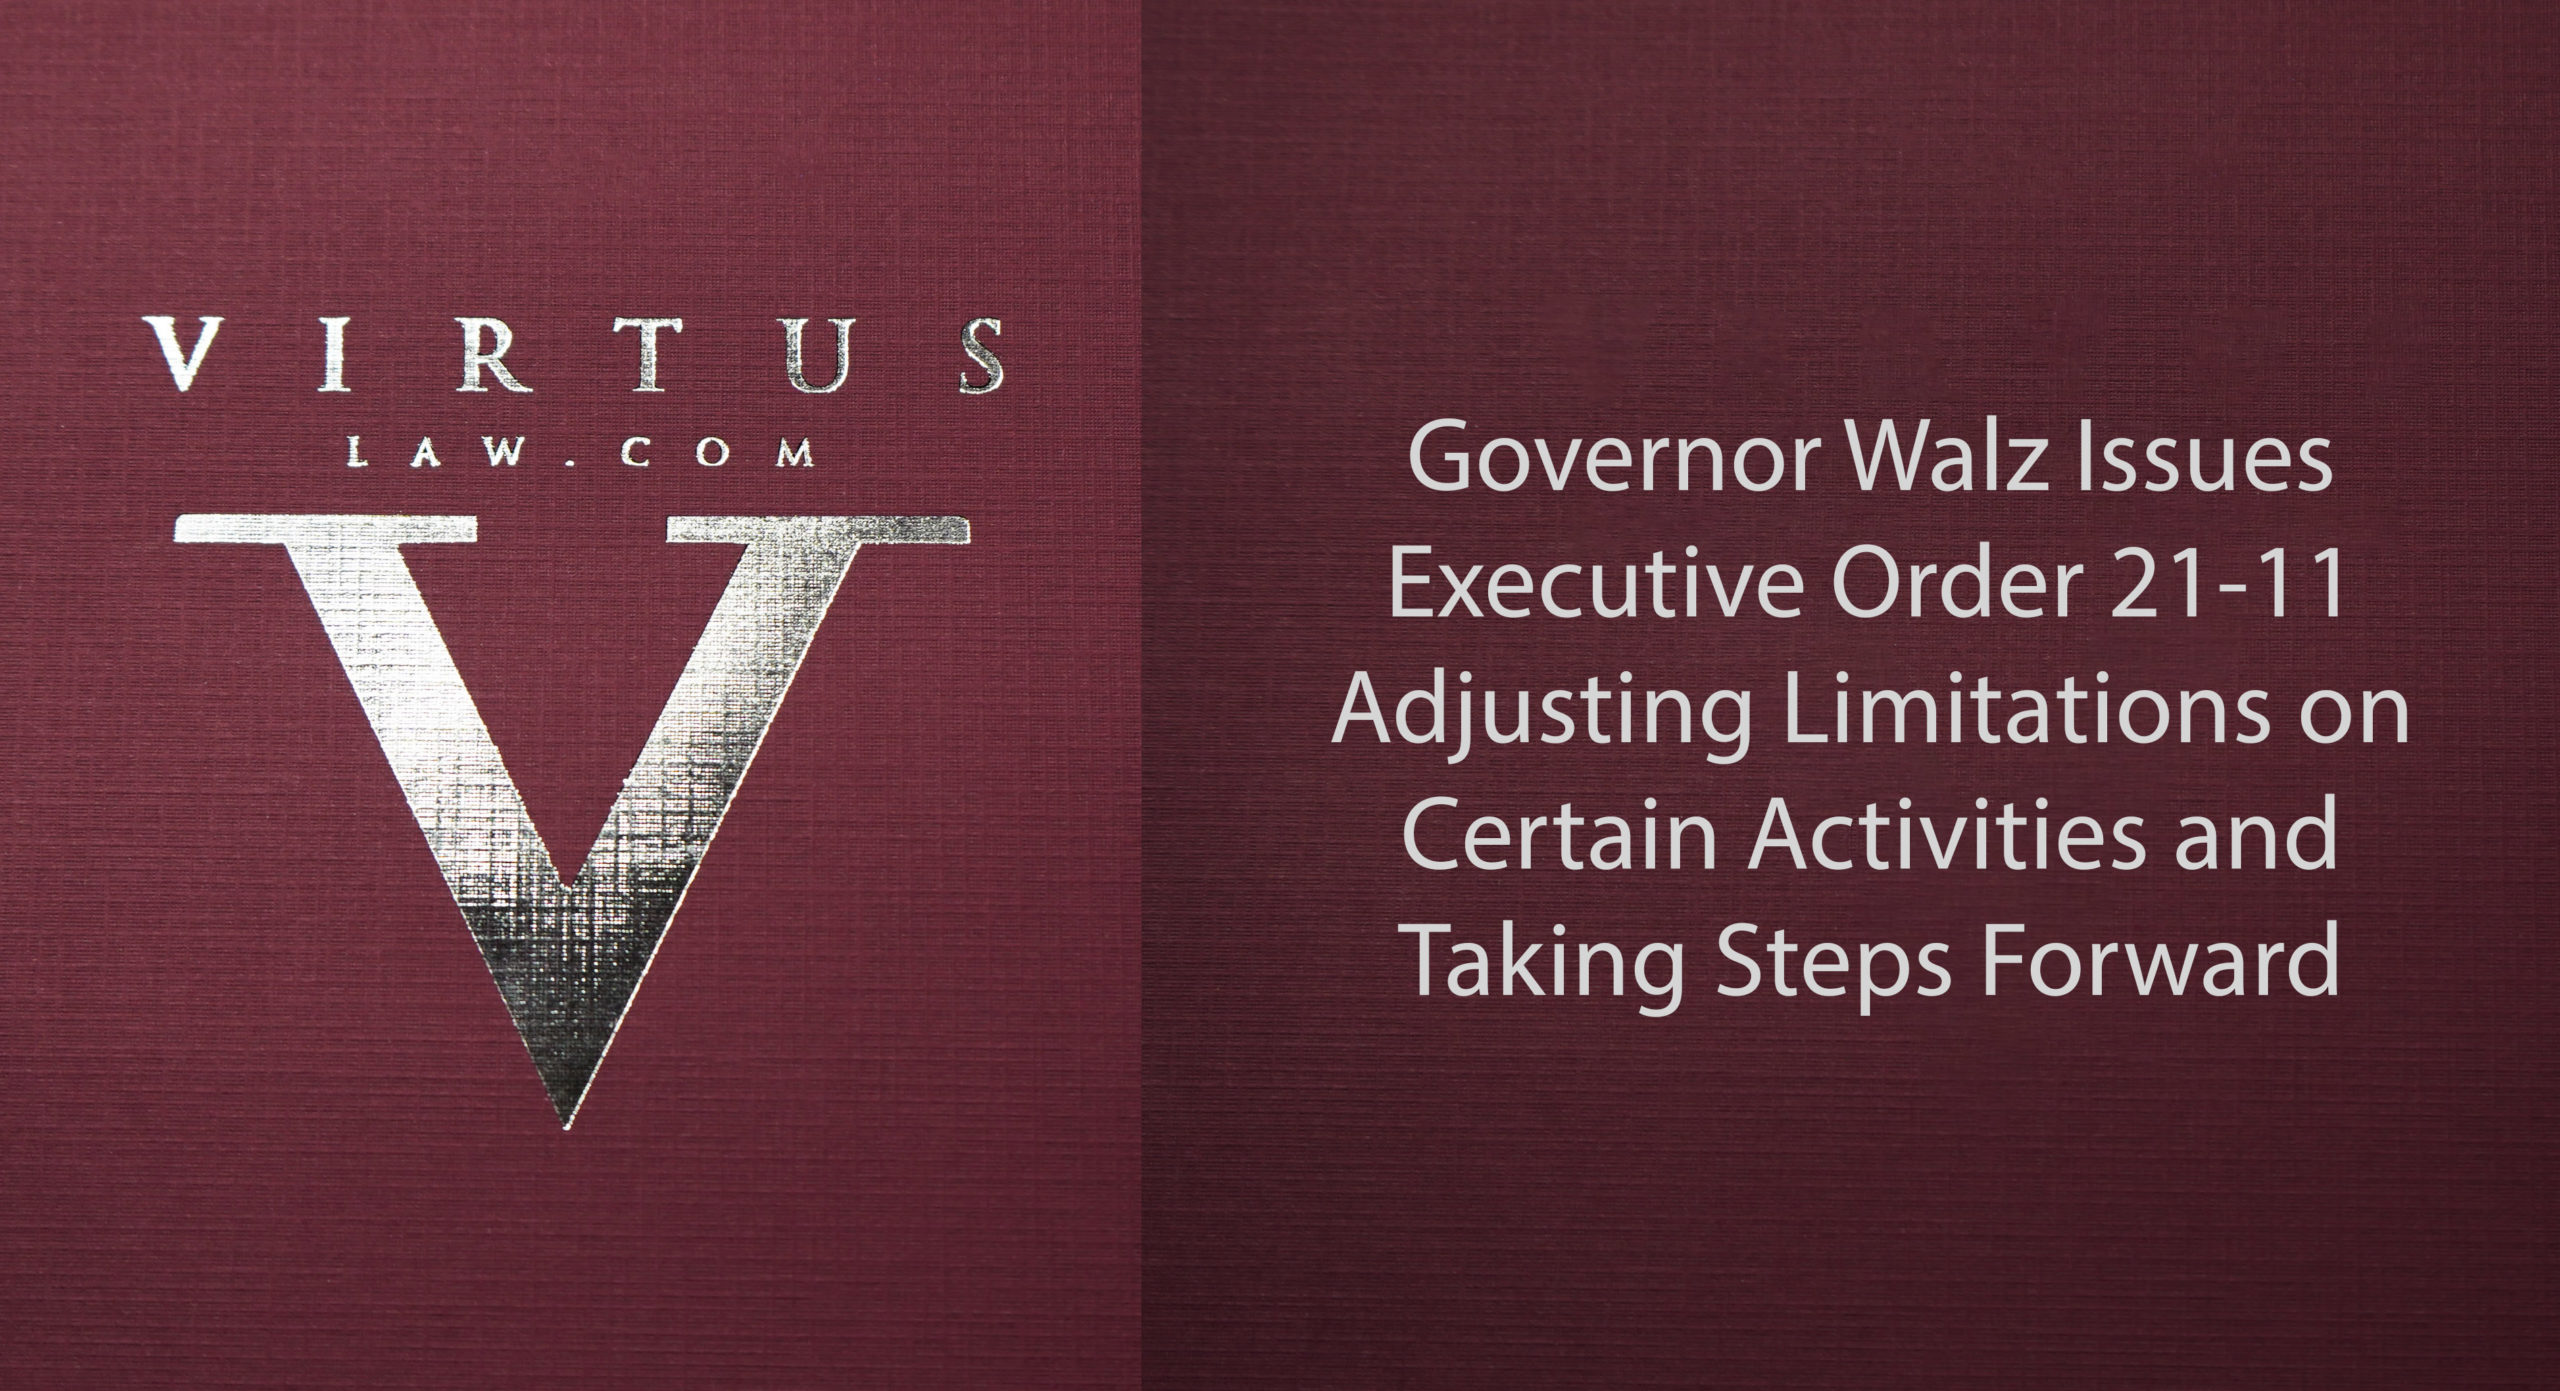 Governor Walz Issues Executive Order 21-11 Adjusting Limitations on Certain Activities and Taking Steps Forward